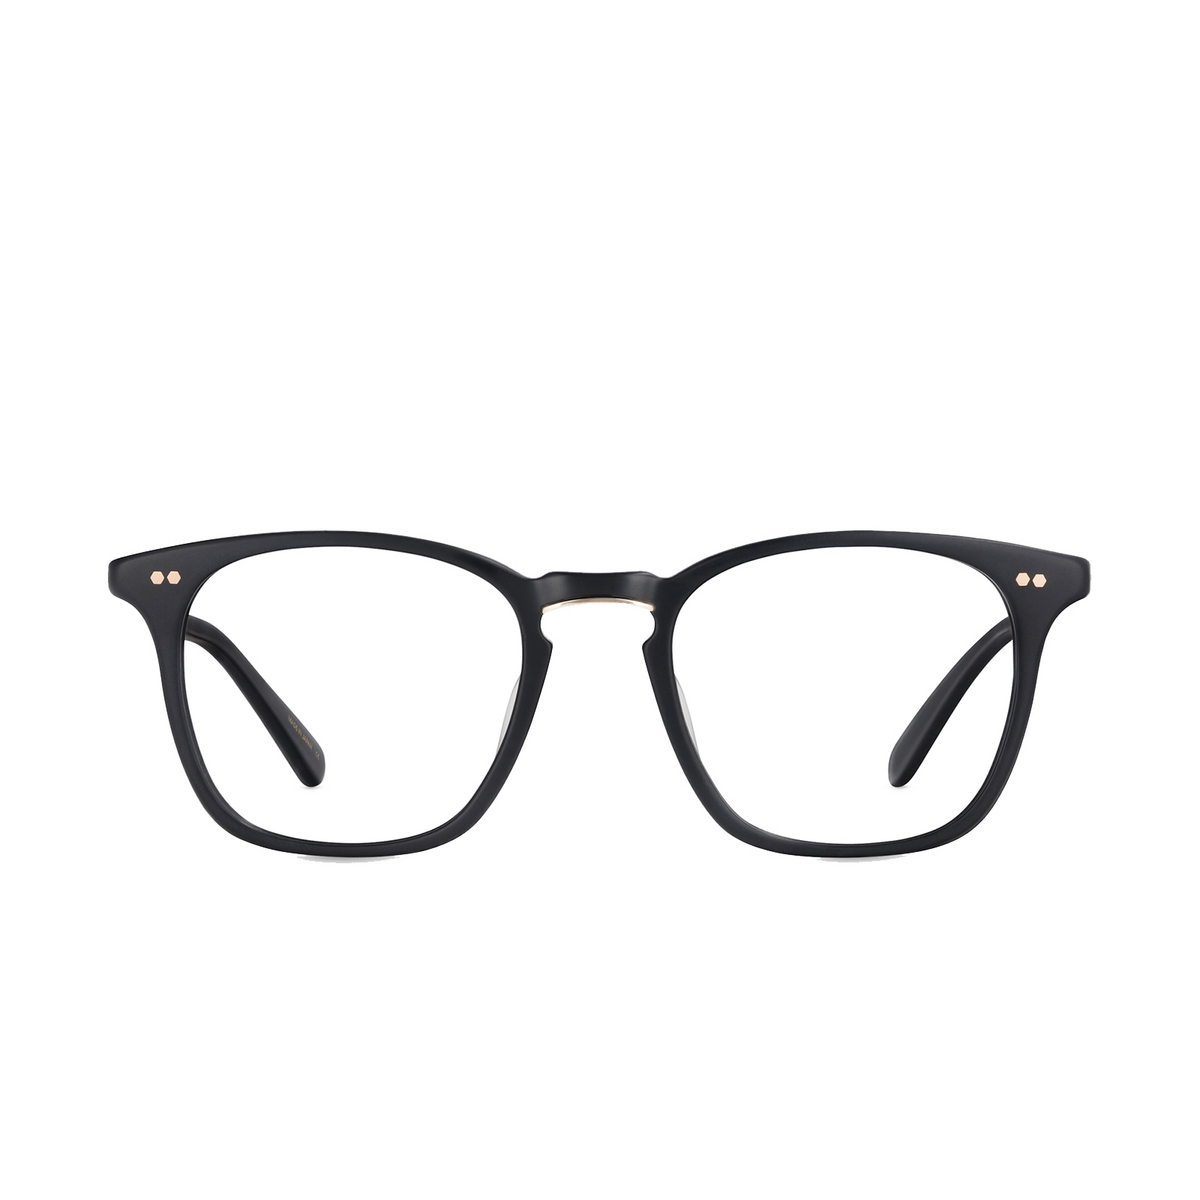 Mr. Leight® Square Eyeglasses: Getty C color MBK-12KWG - front view.